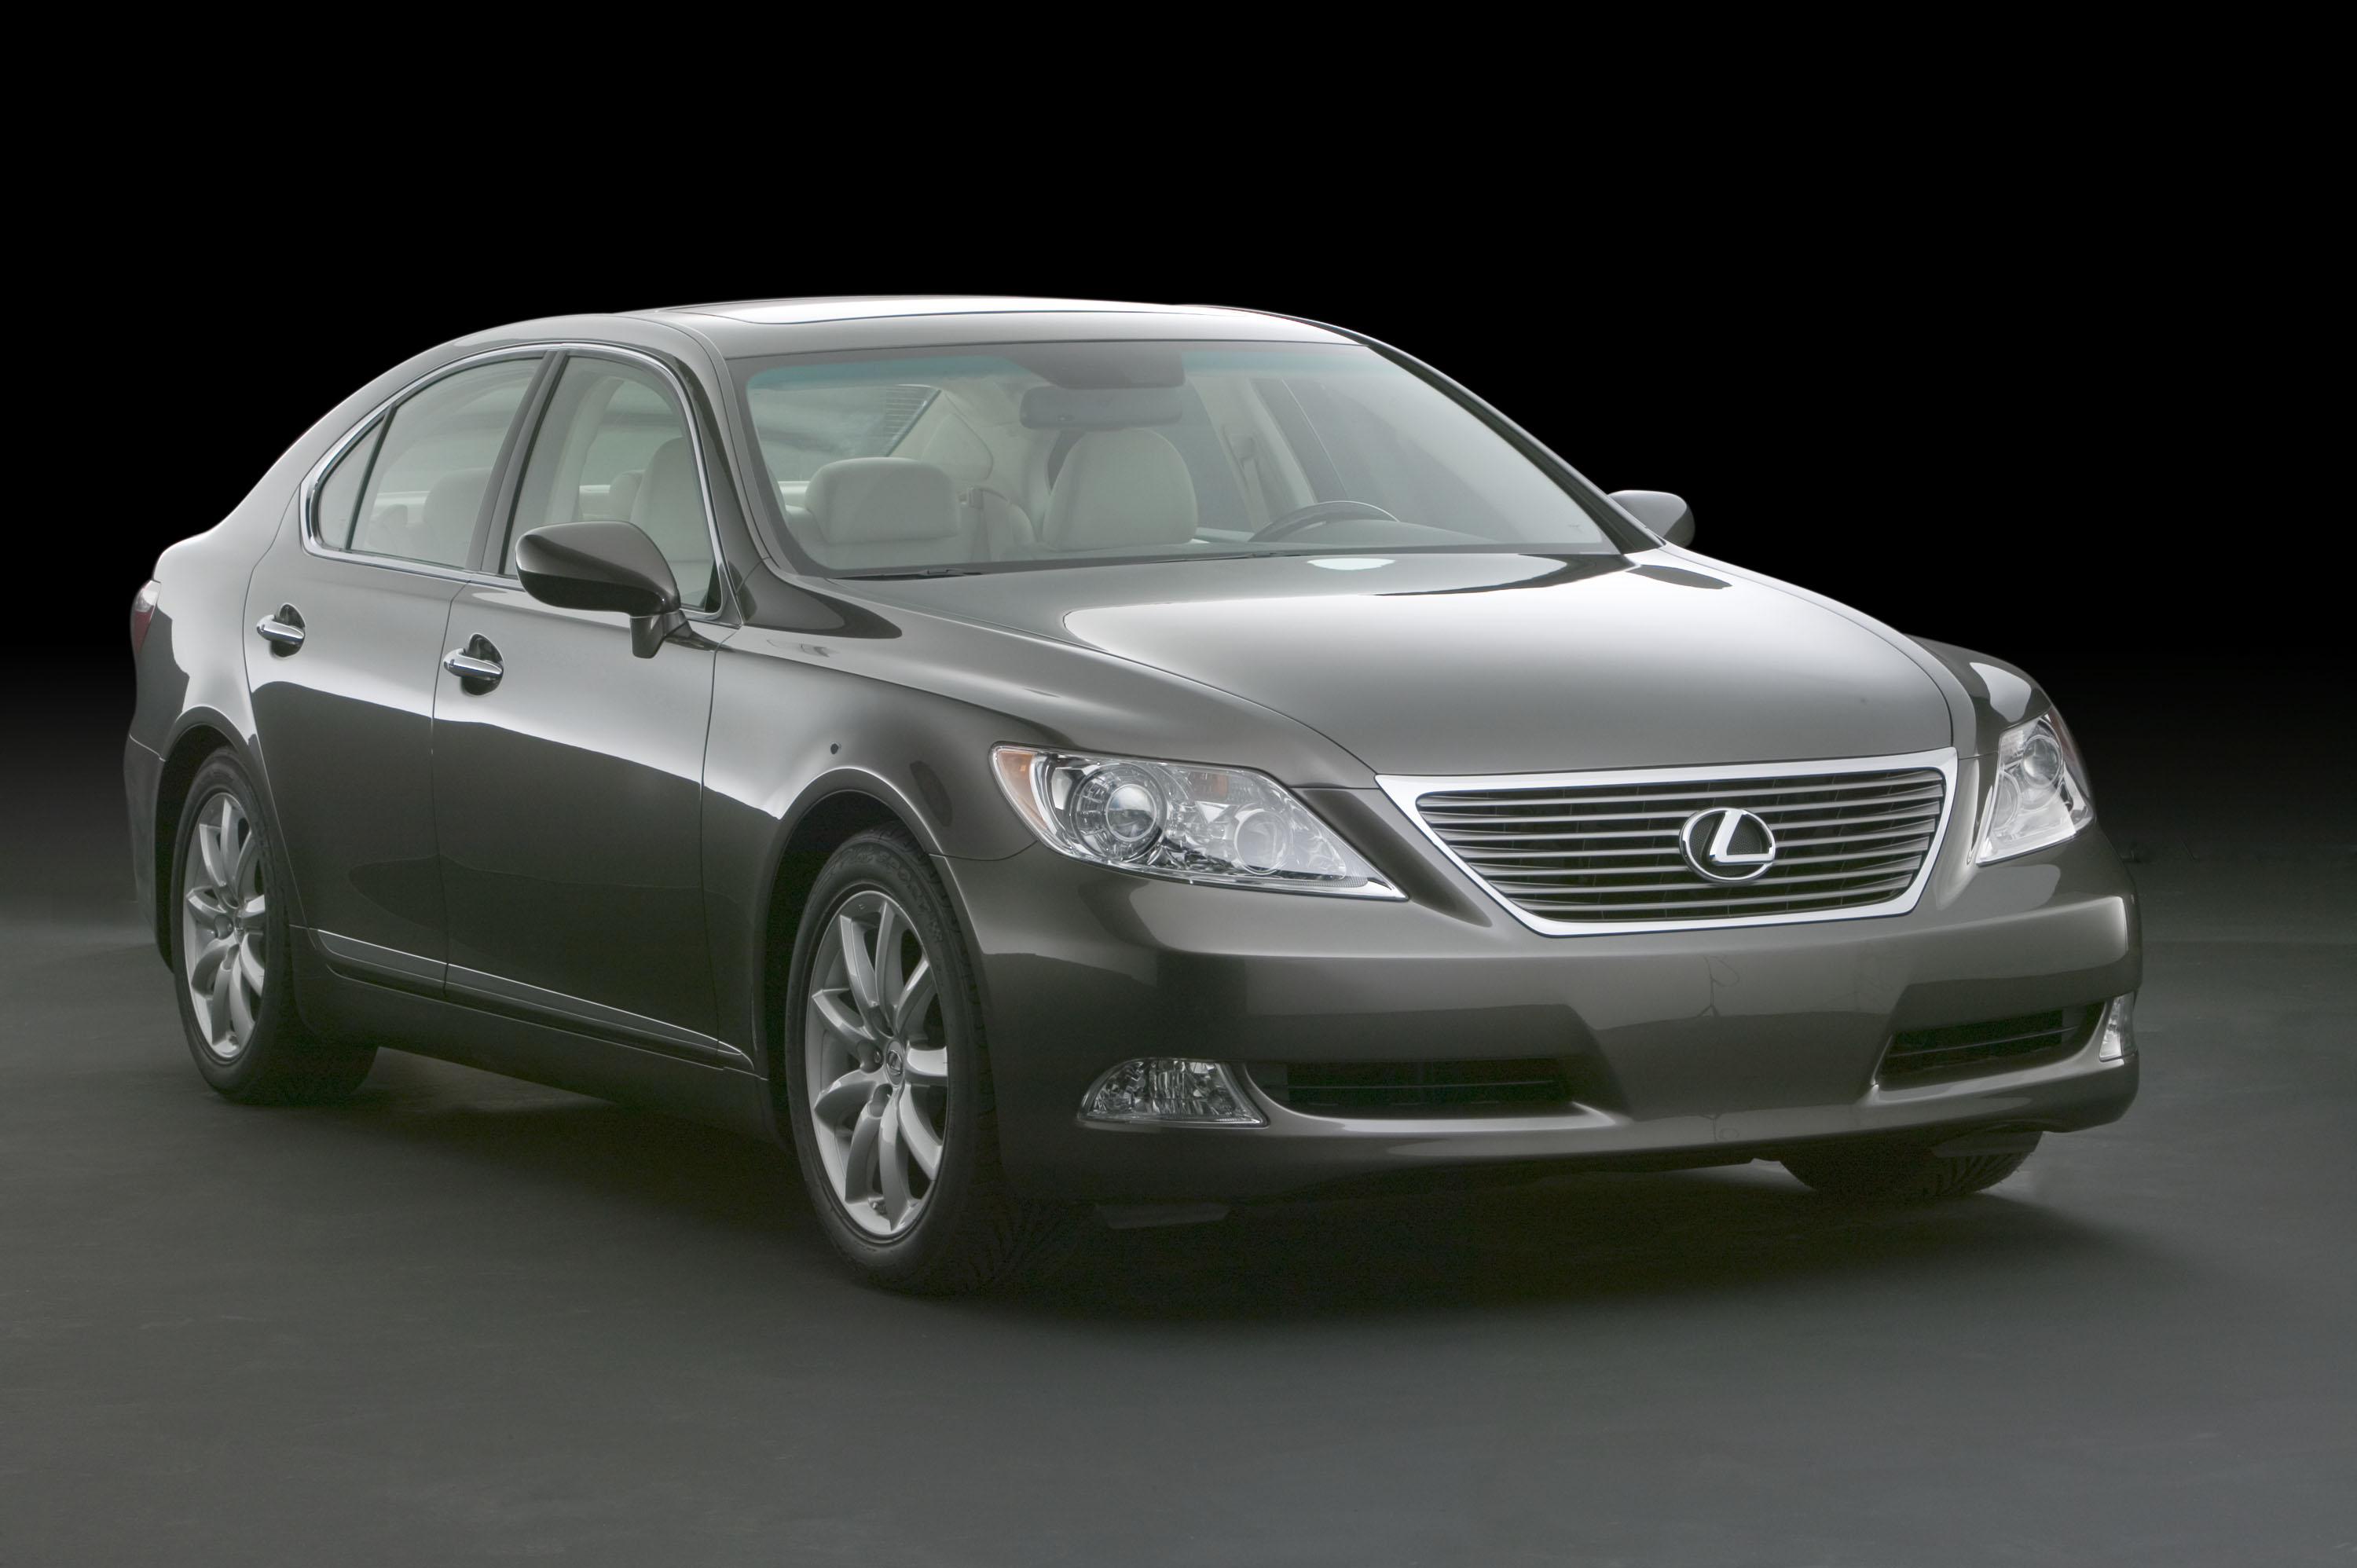 2007 Lexus LS 460 Review Top Speed